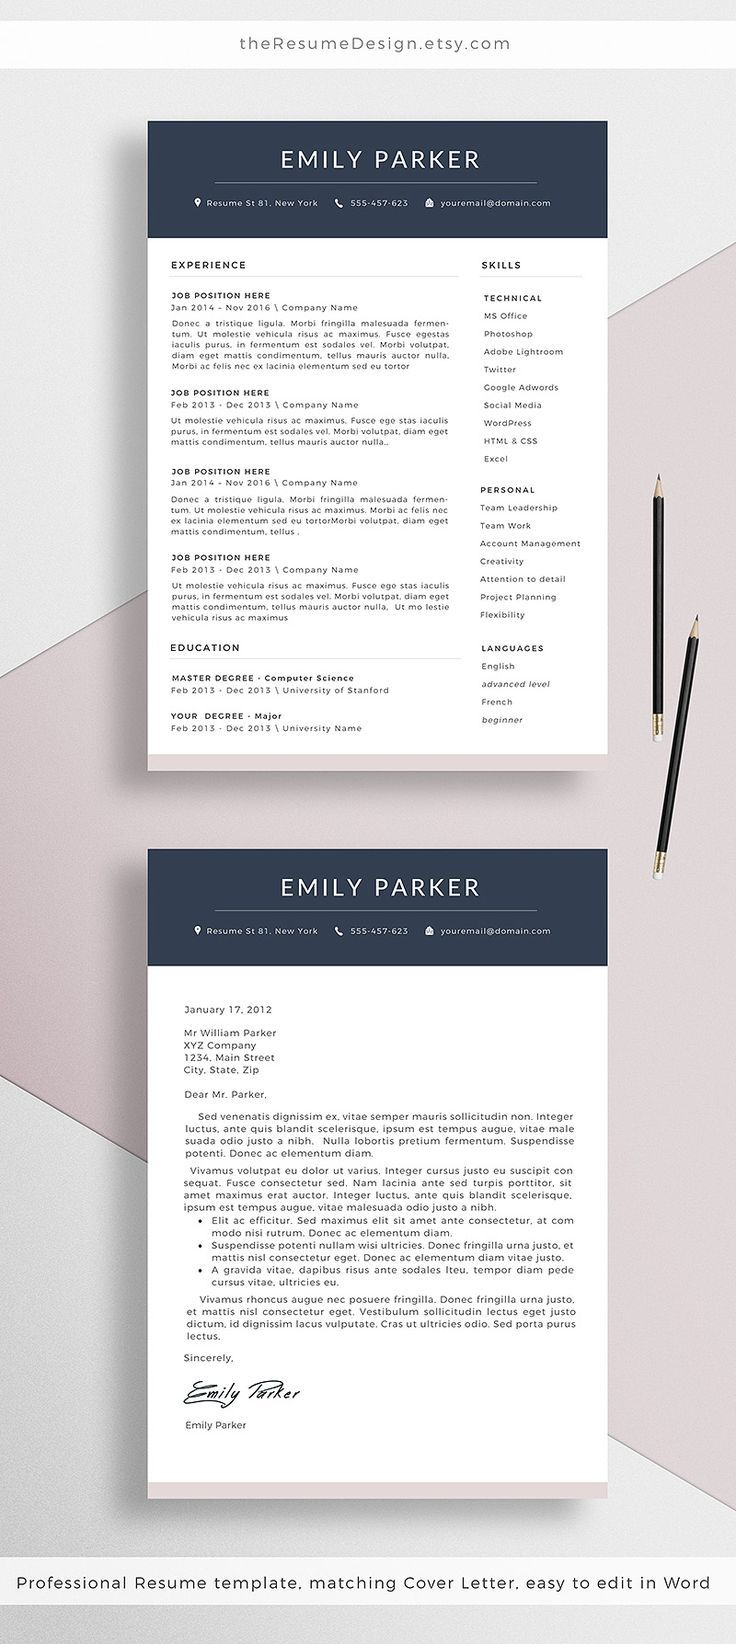 Our NEW professional Resume Template Cover